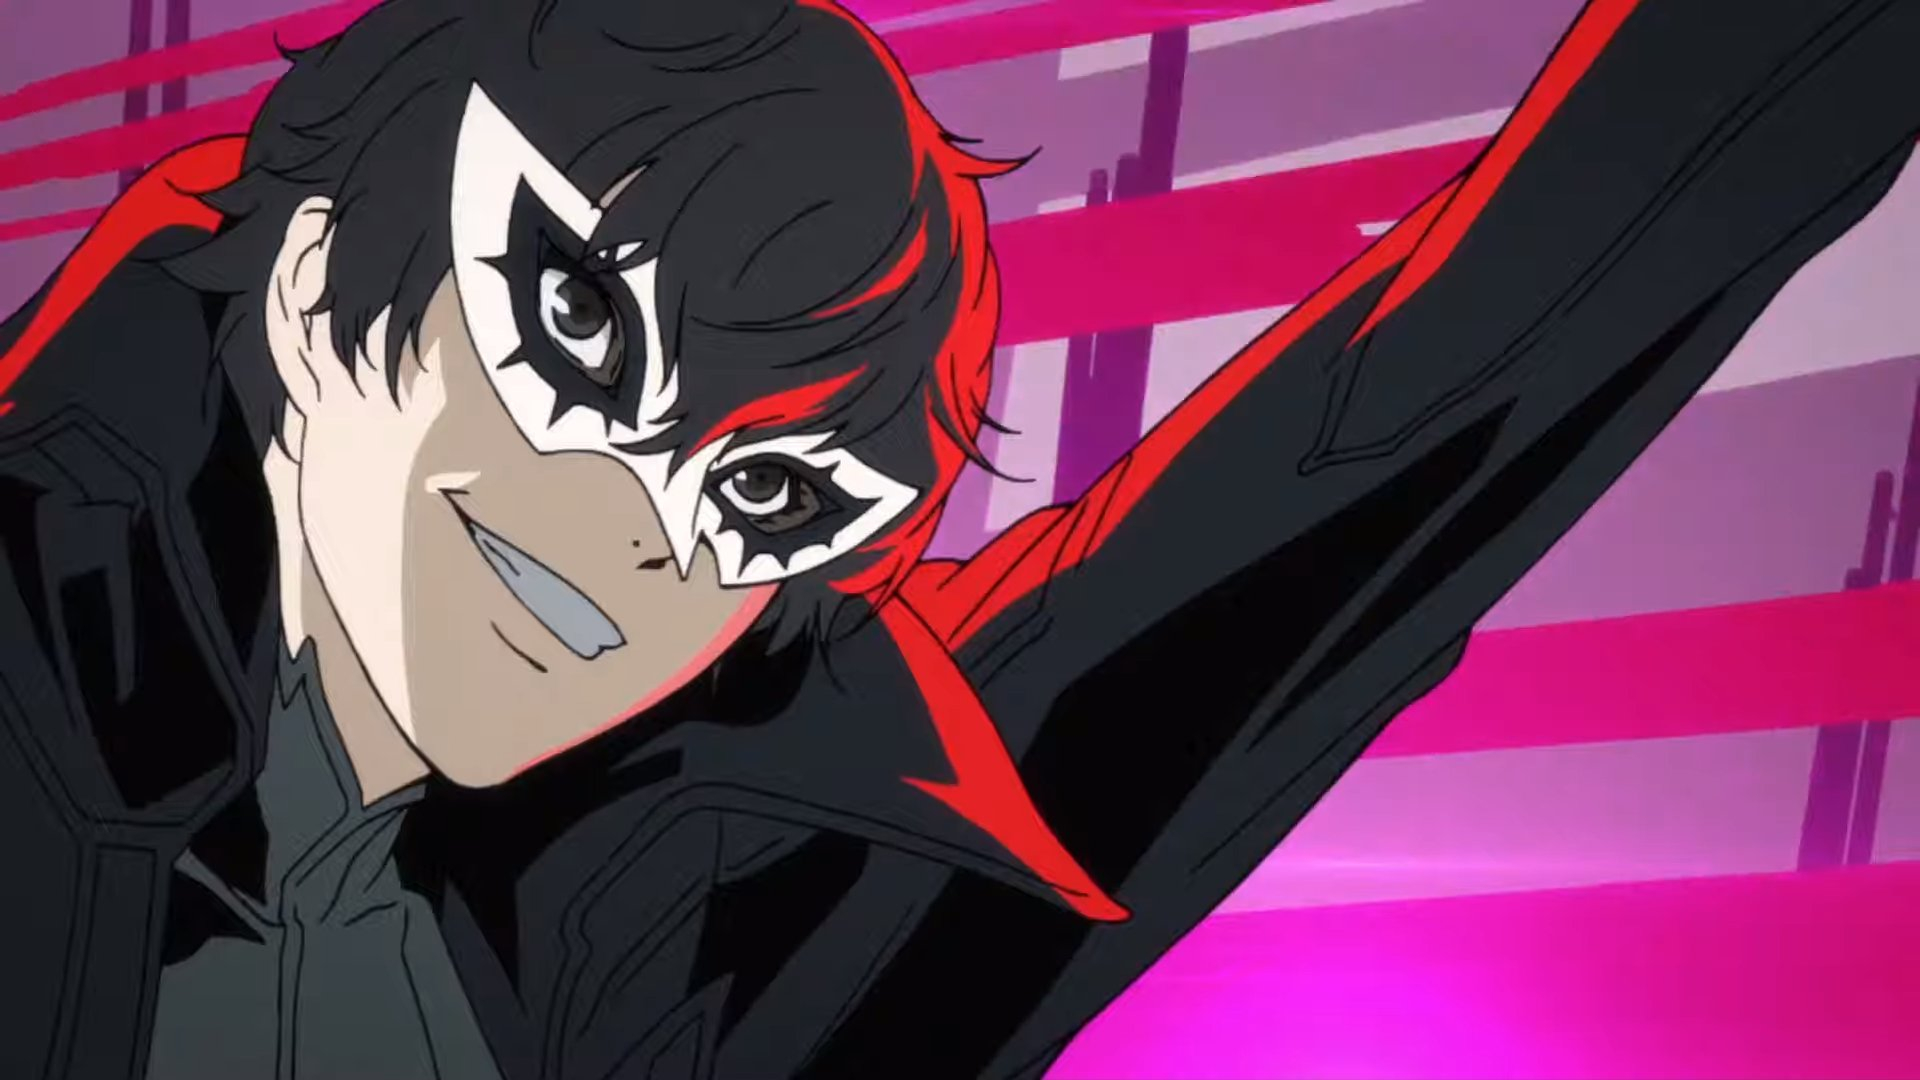 Persona 5 Royal headed westward in 2020 Header Image